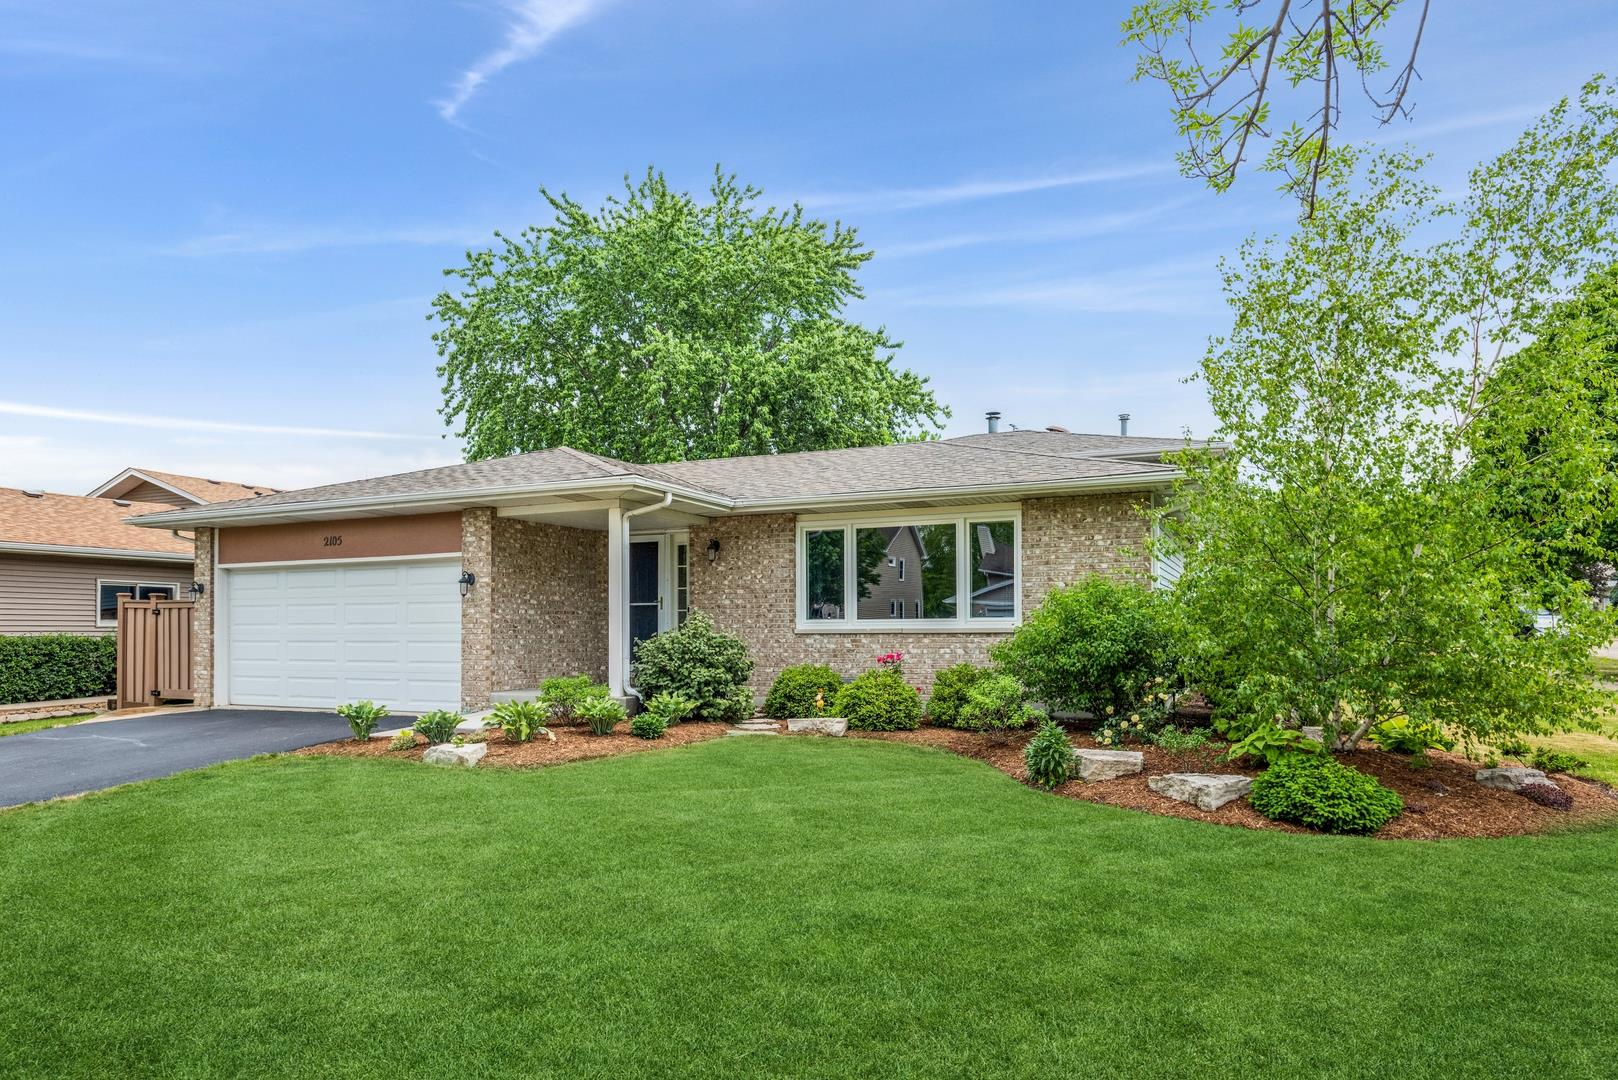 2105 MULBERRY Drive, West Chicago, IL 60185 - #: 11112317